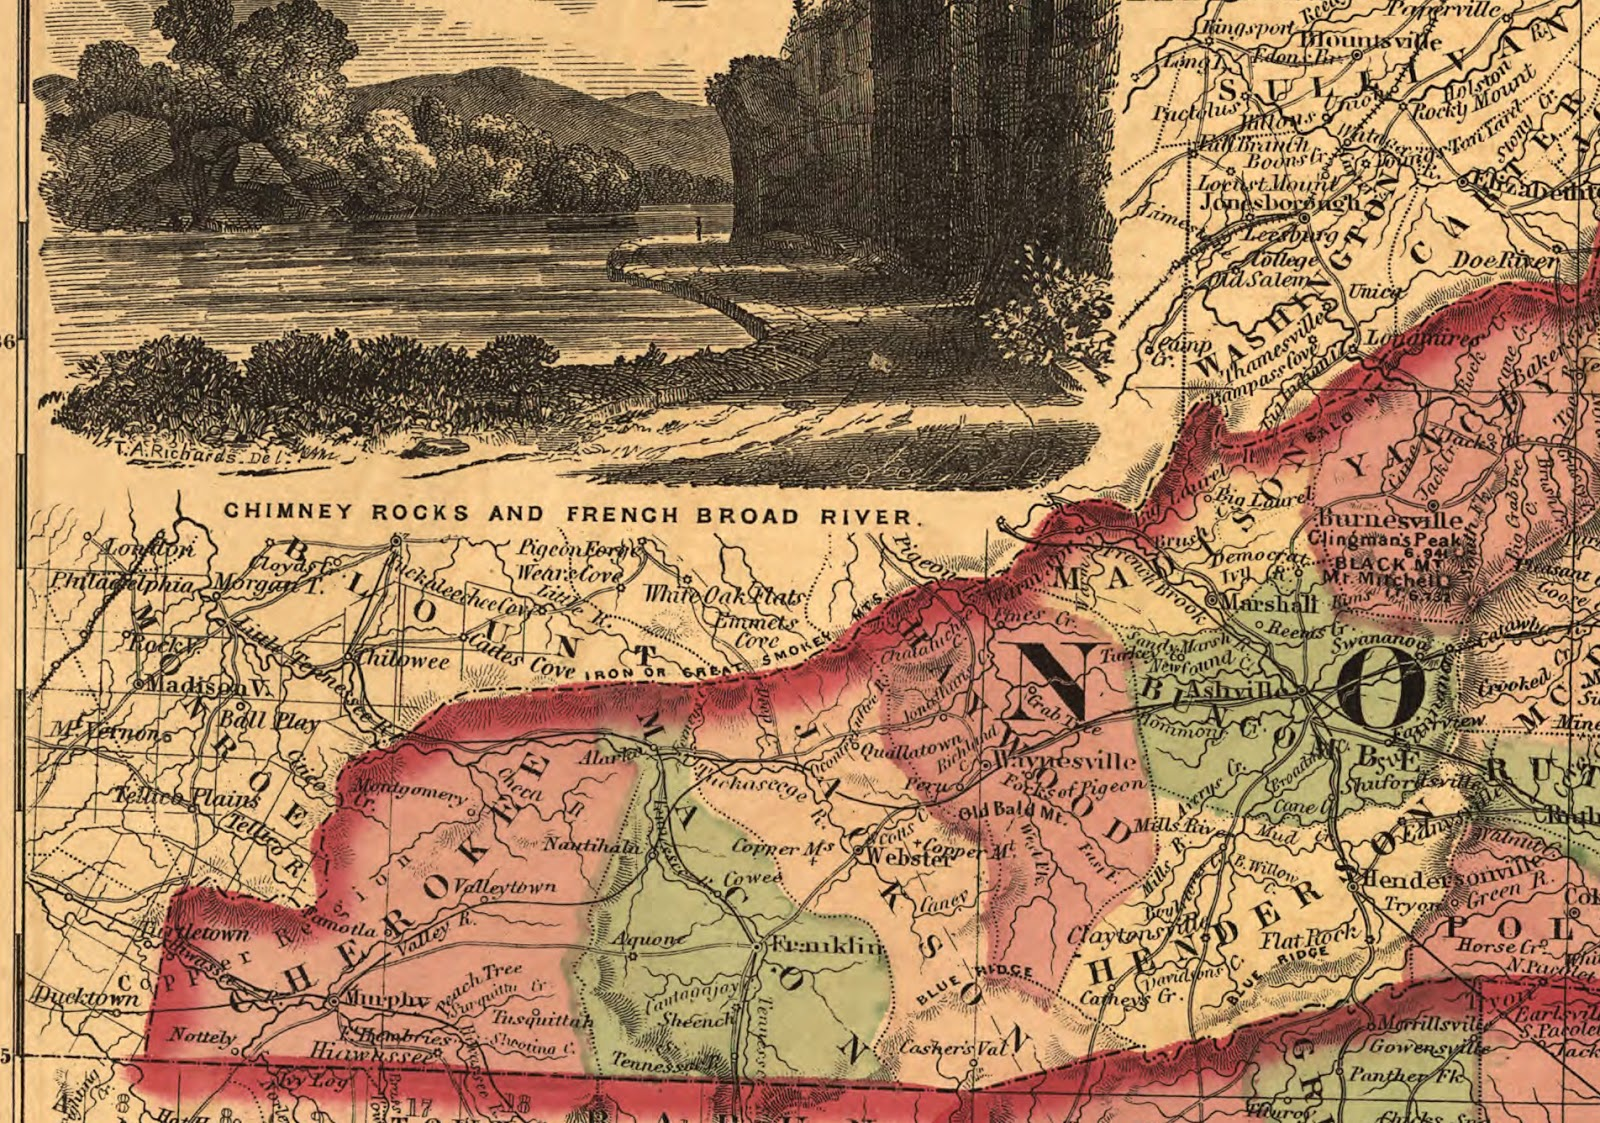 an 1864 map provides a little more detail on the mountain range the great smoky mountains begin at the little tennessee river and extend to the french